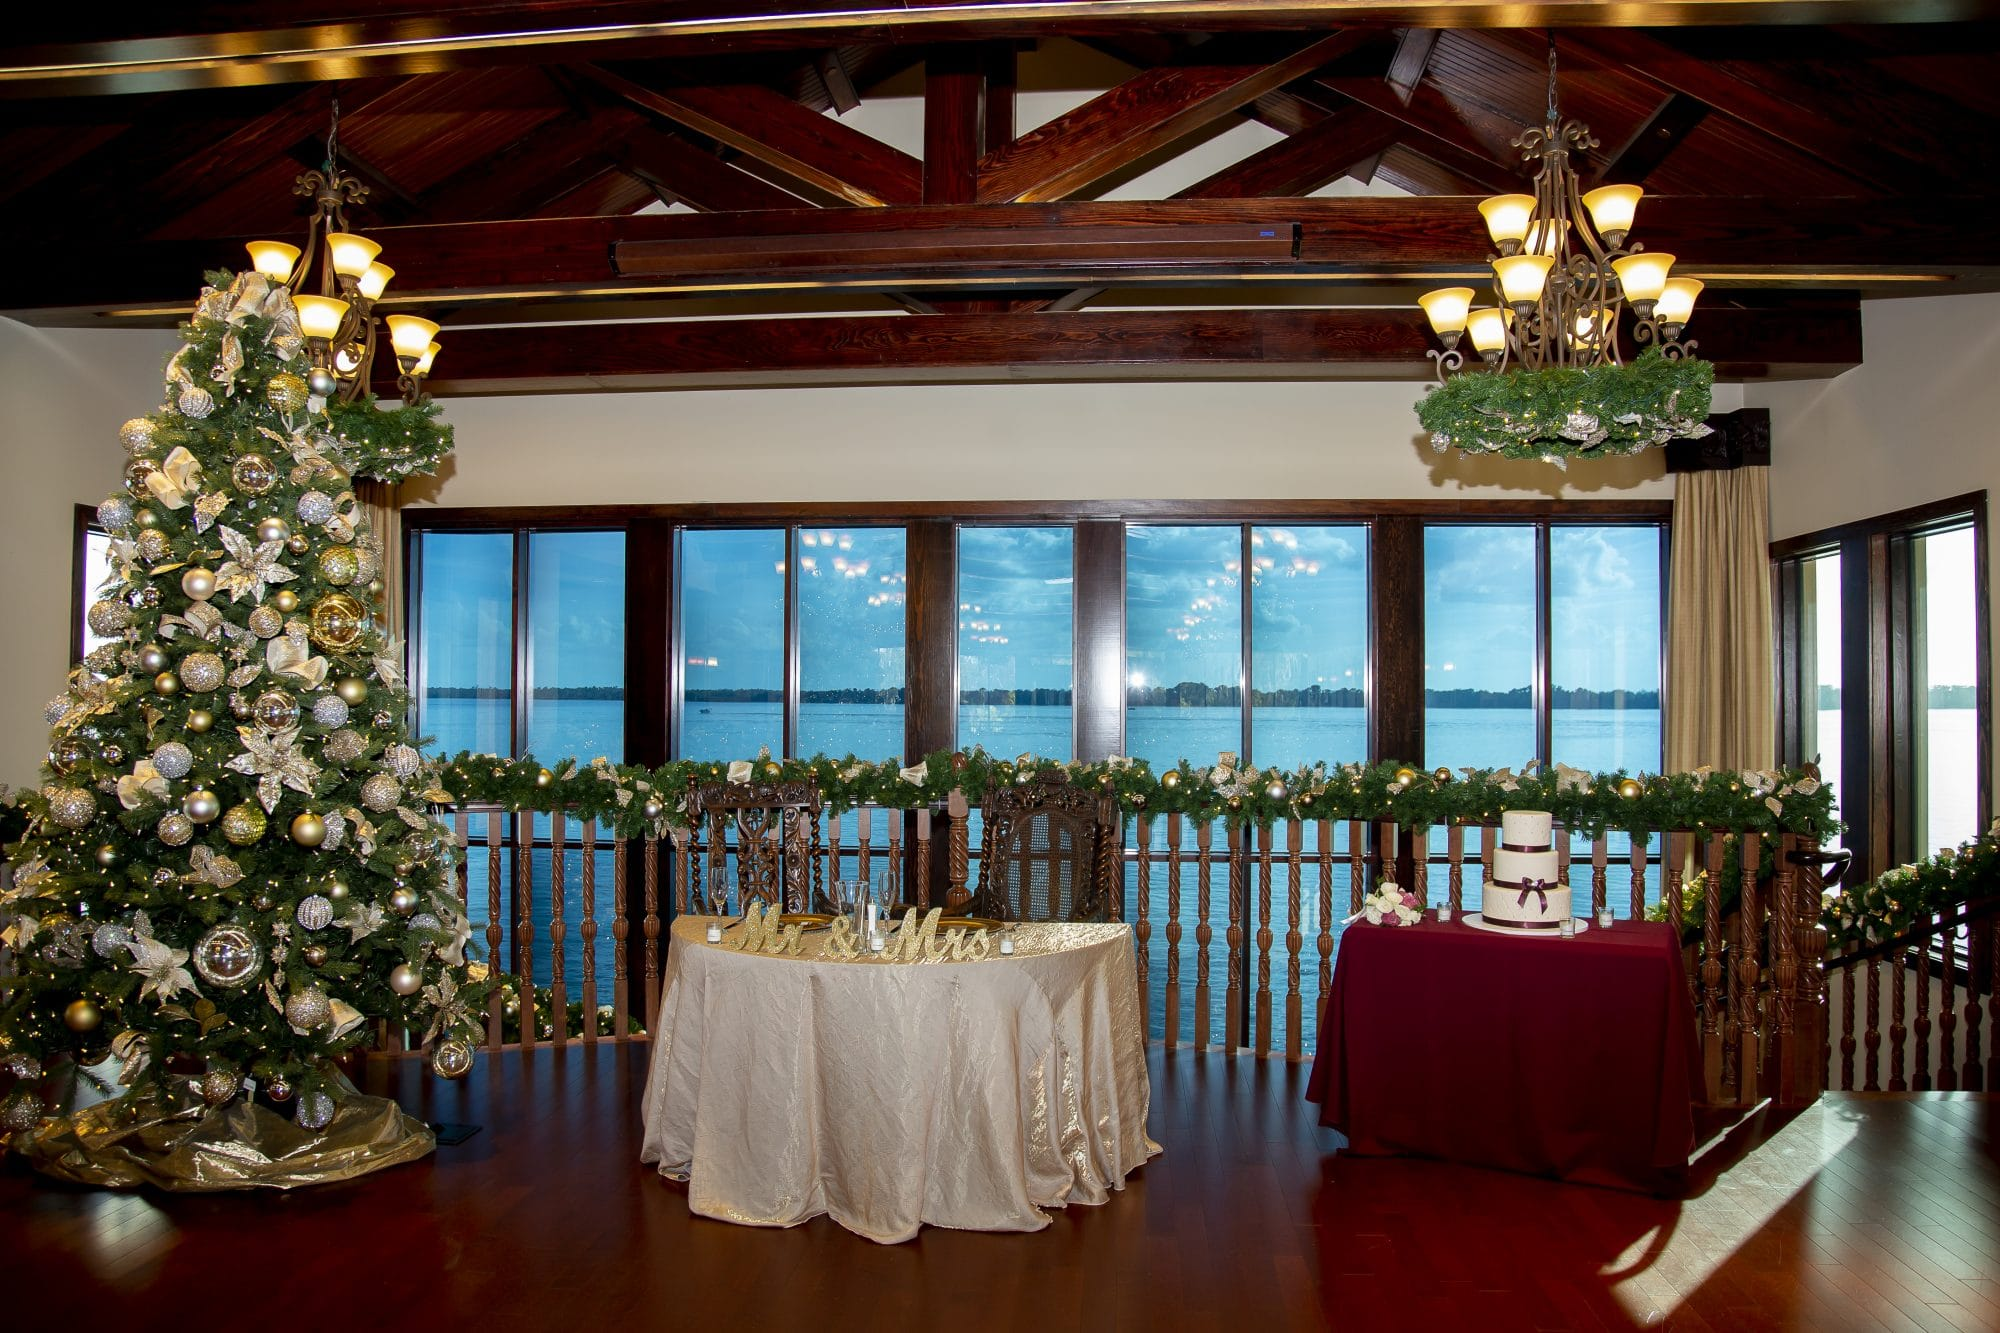 Gorgeous wedding venue with Christmas decorations